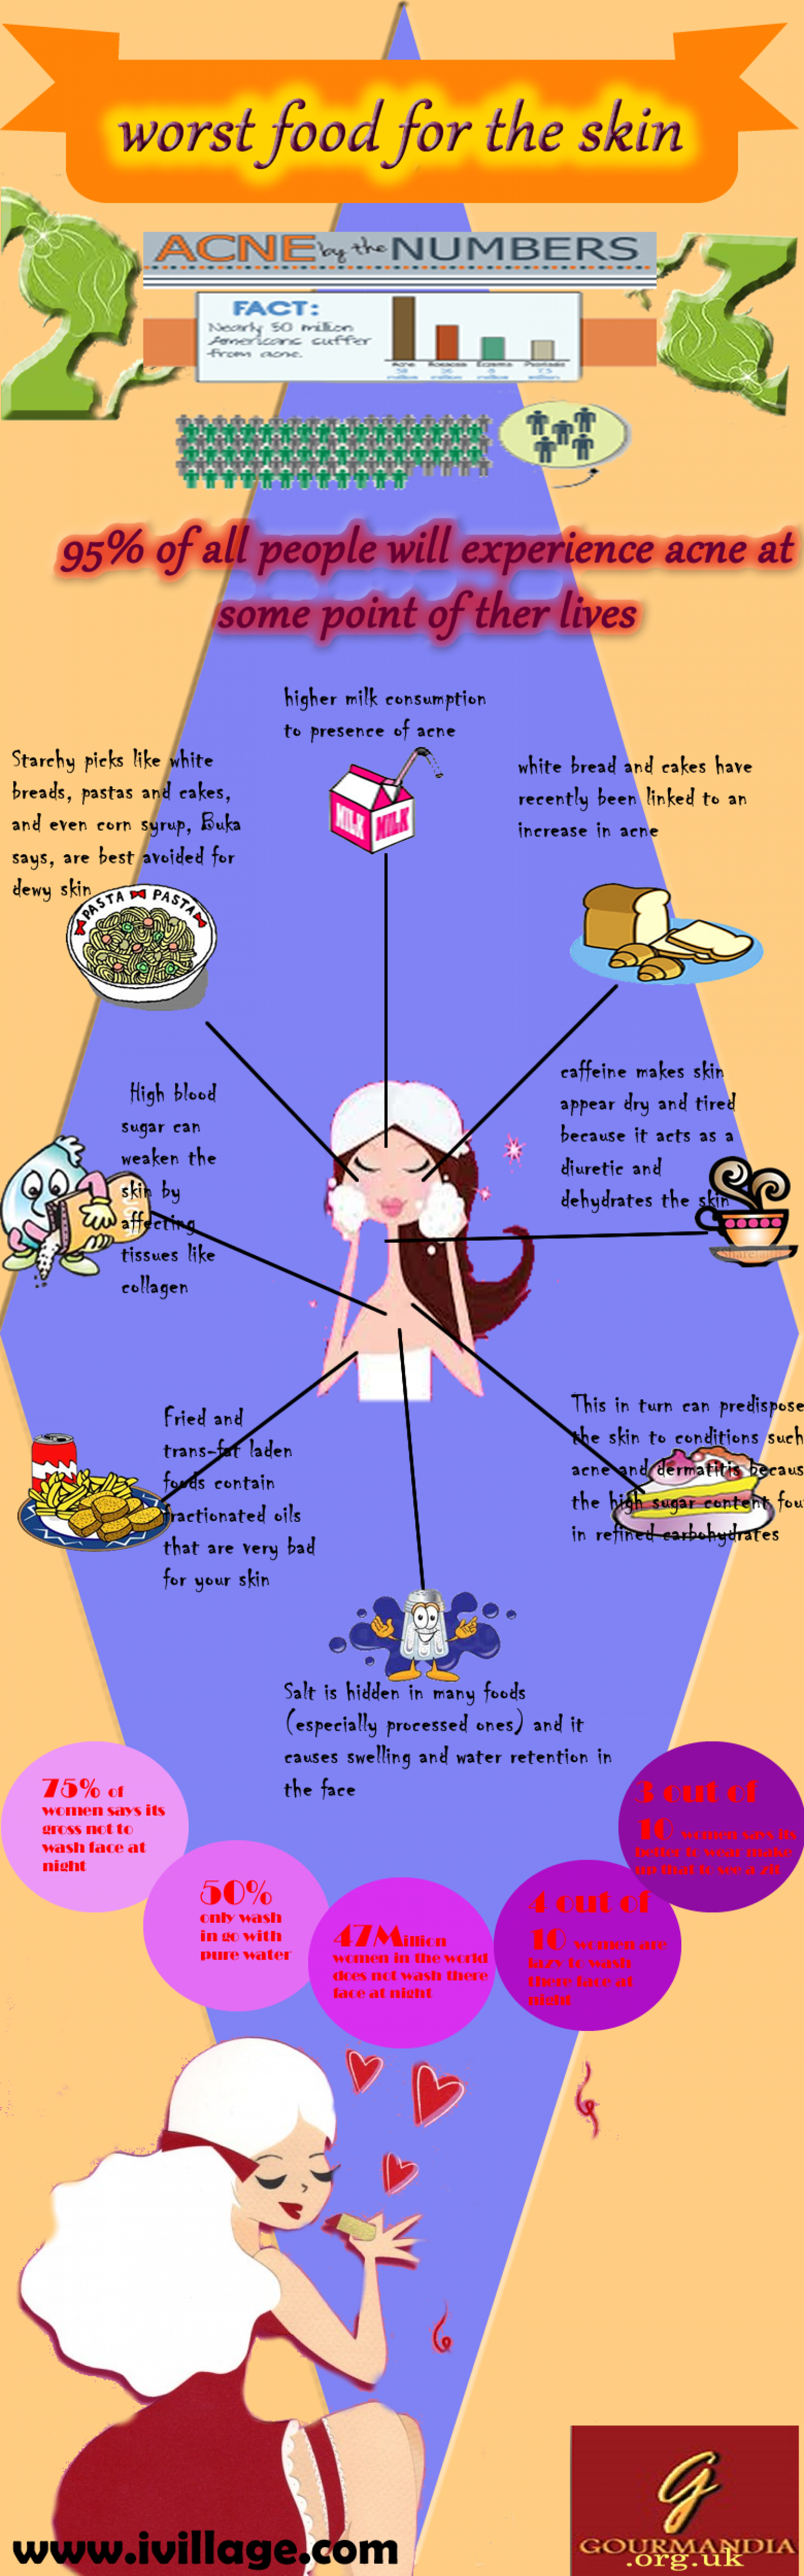 Worst Food For The Skin Infographic